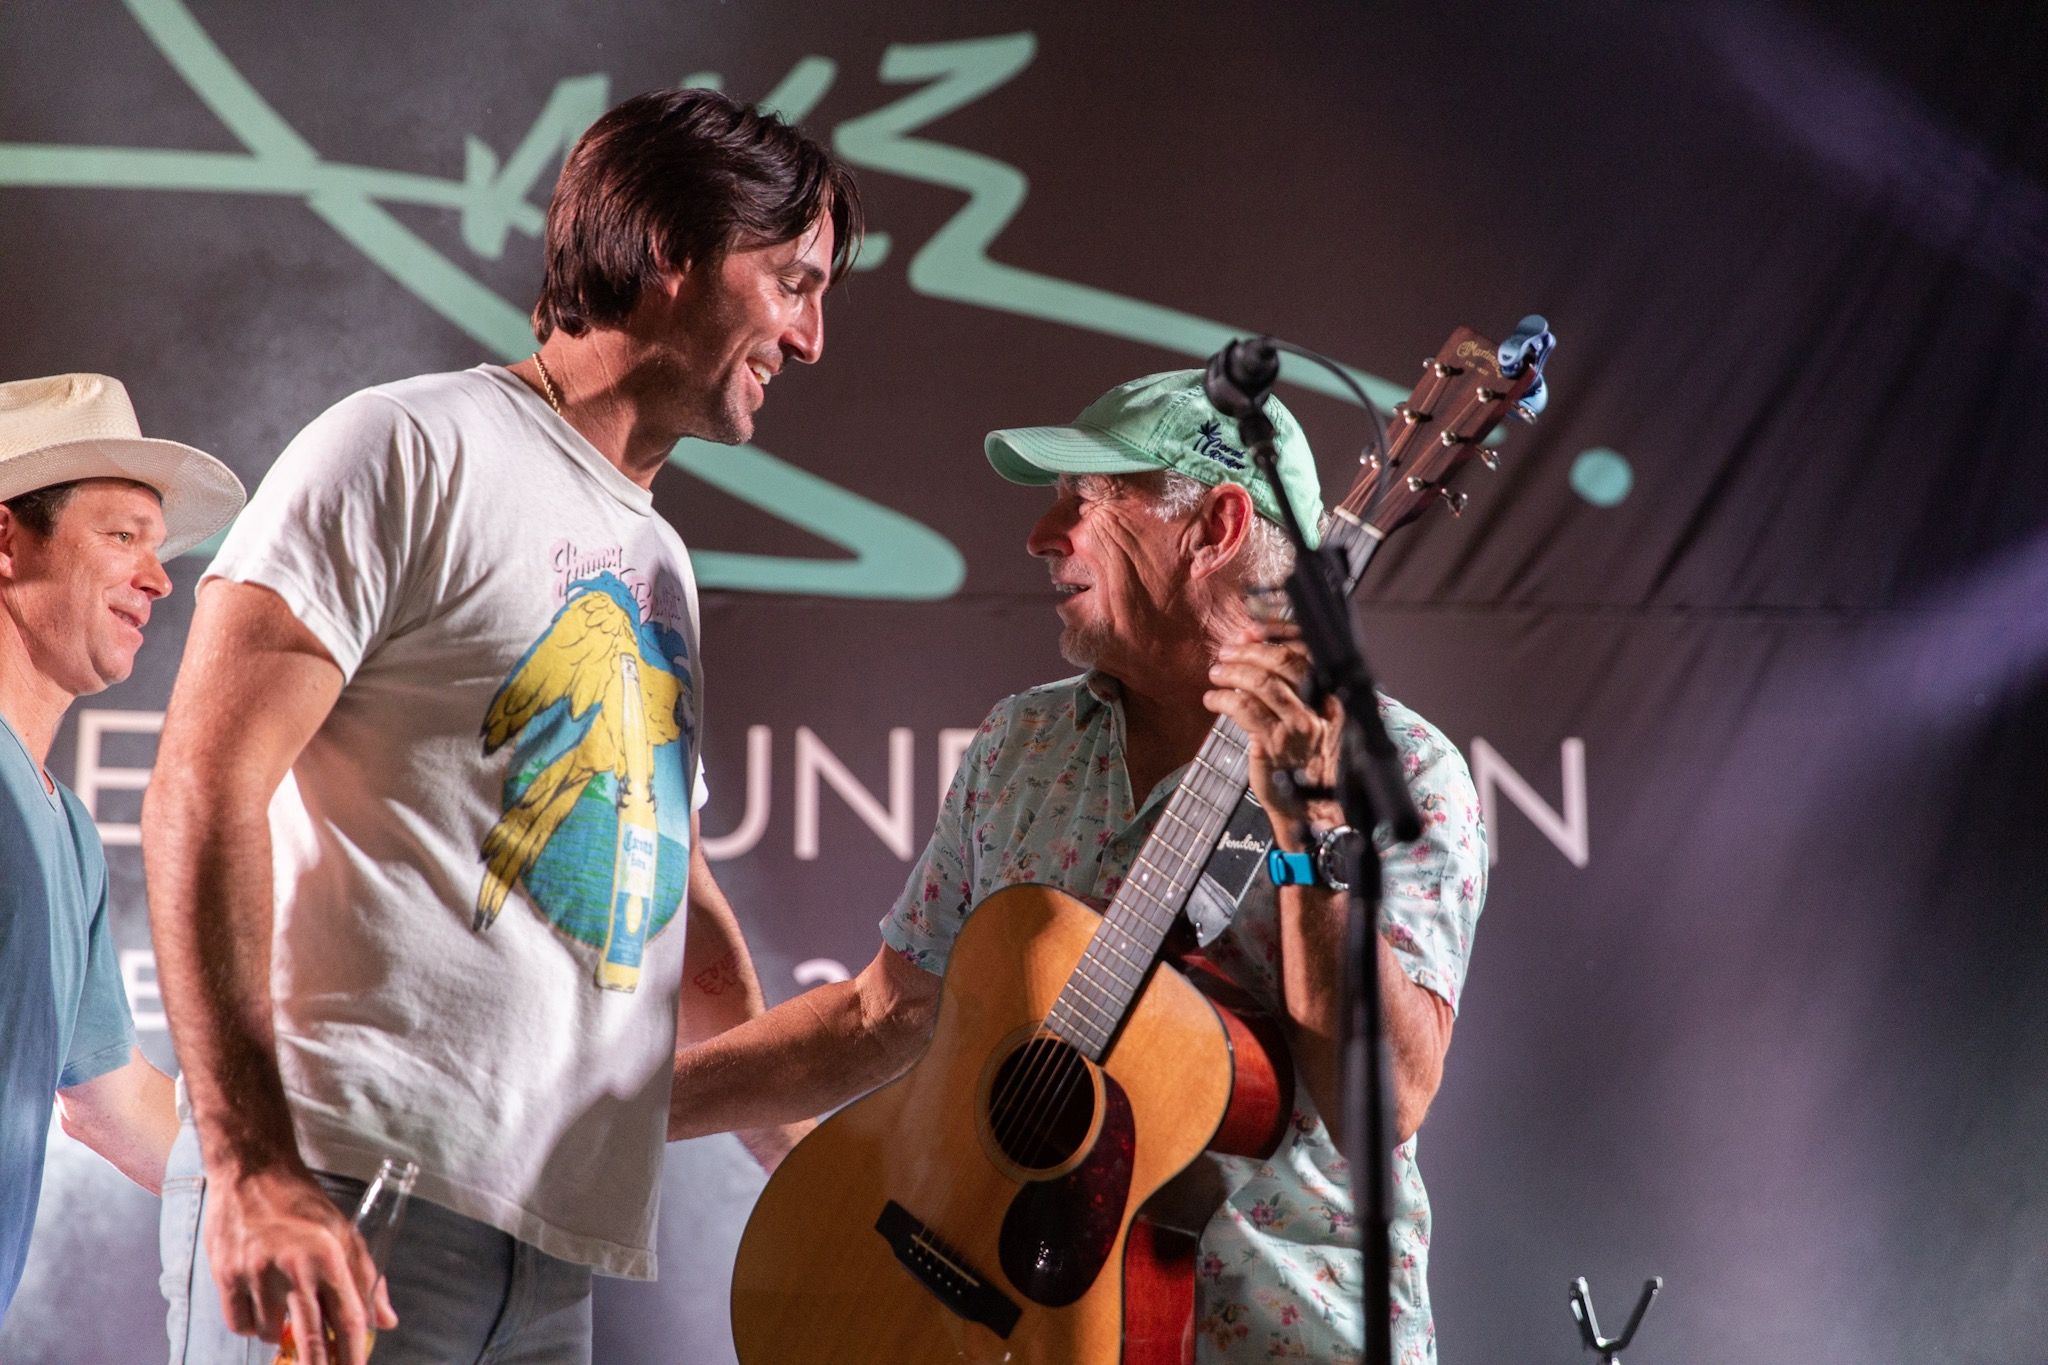 JAKE OWEN HOSTS CHARITY EVENT THE FLAMINGO WITH LOTS OF FRIENDS